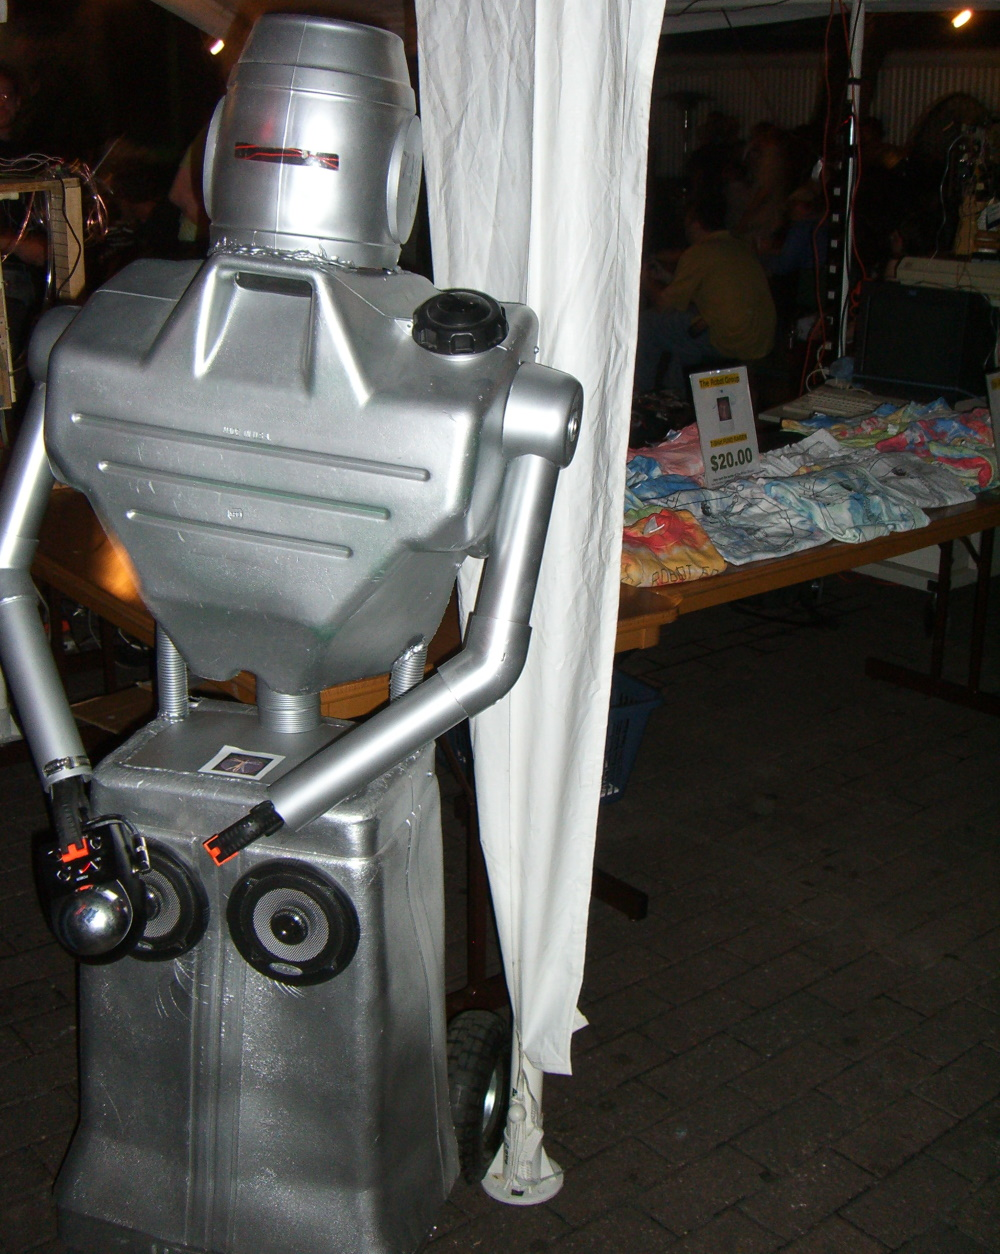 A silver-colored robot at SXSW 2007 steampunk party